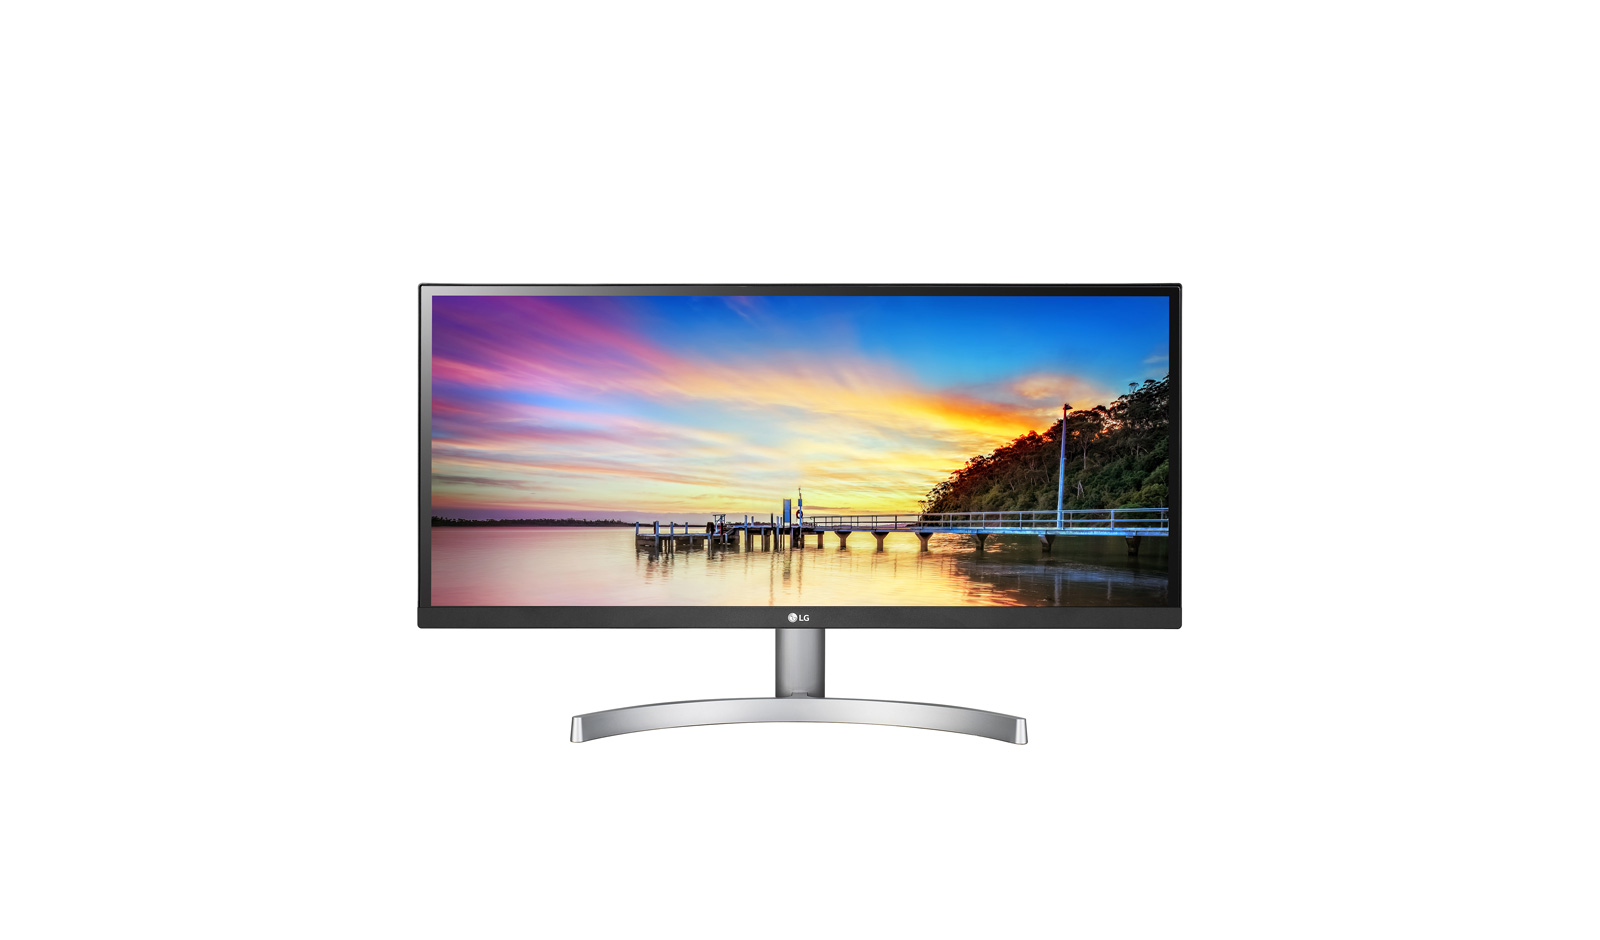 Monitor LED LG 29WK600-W 29 5ms Negru